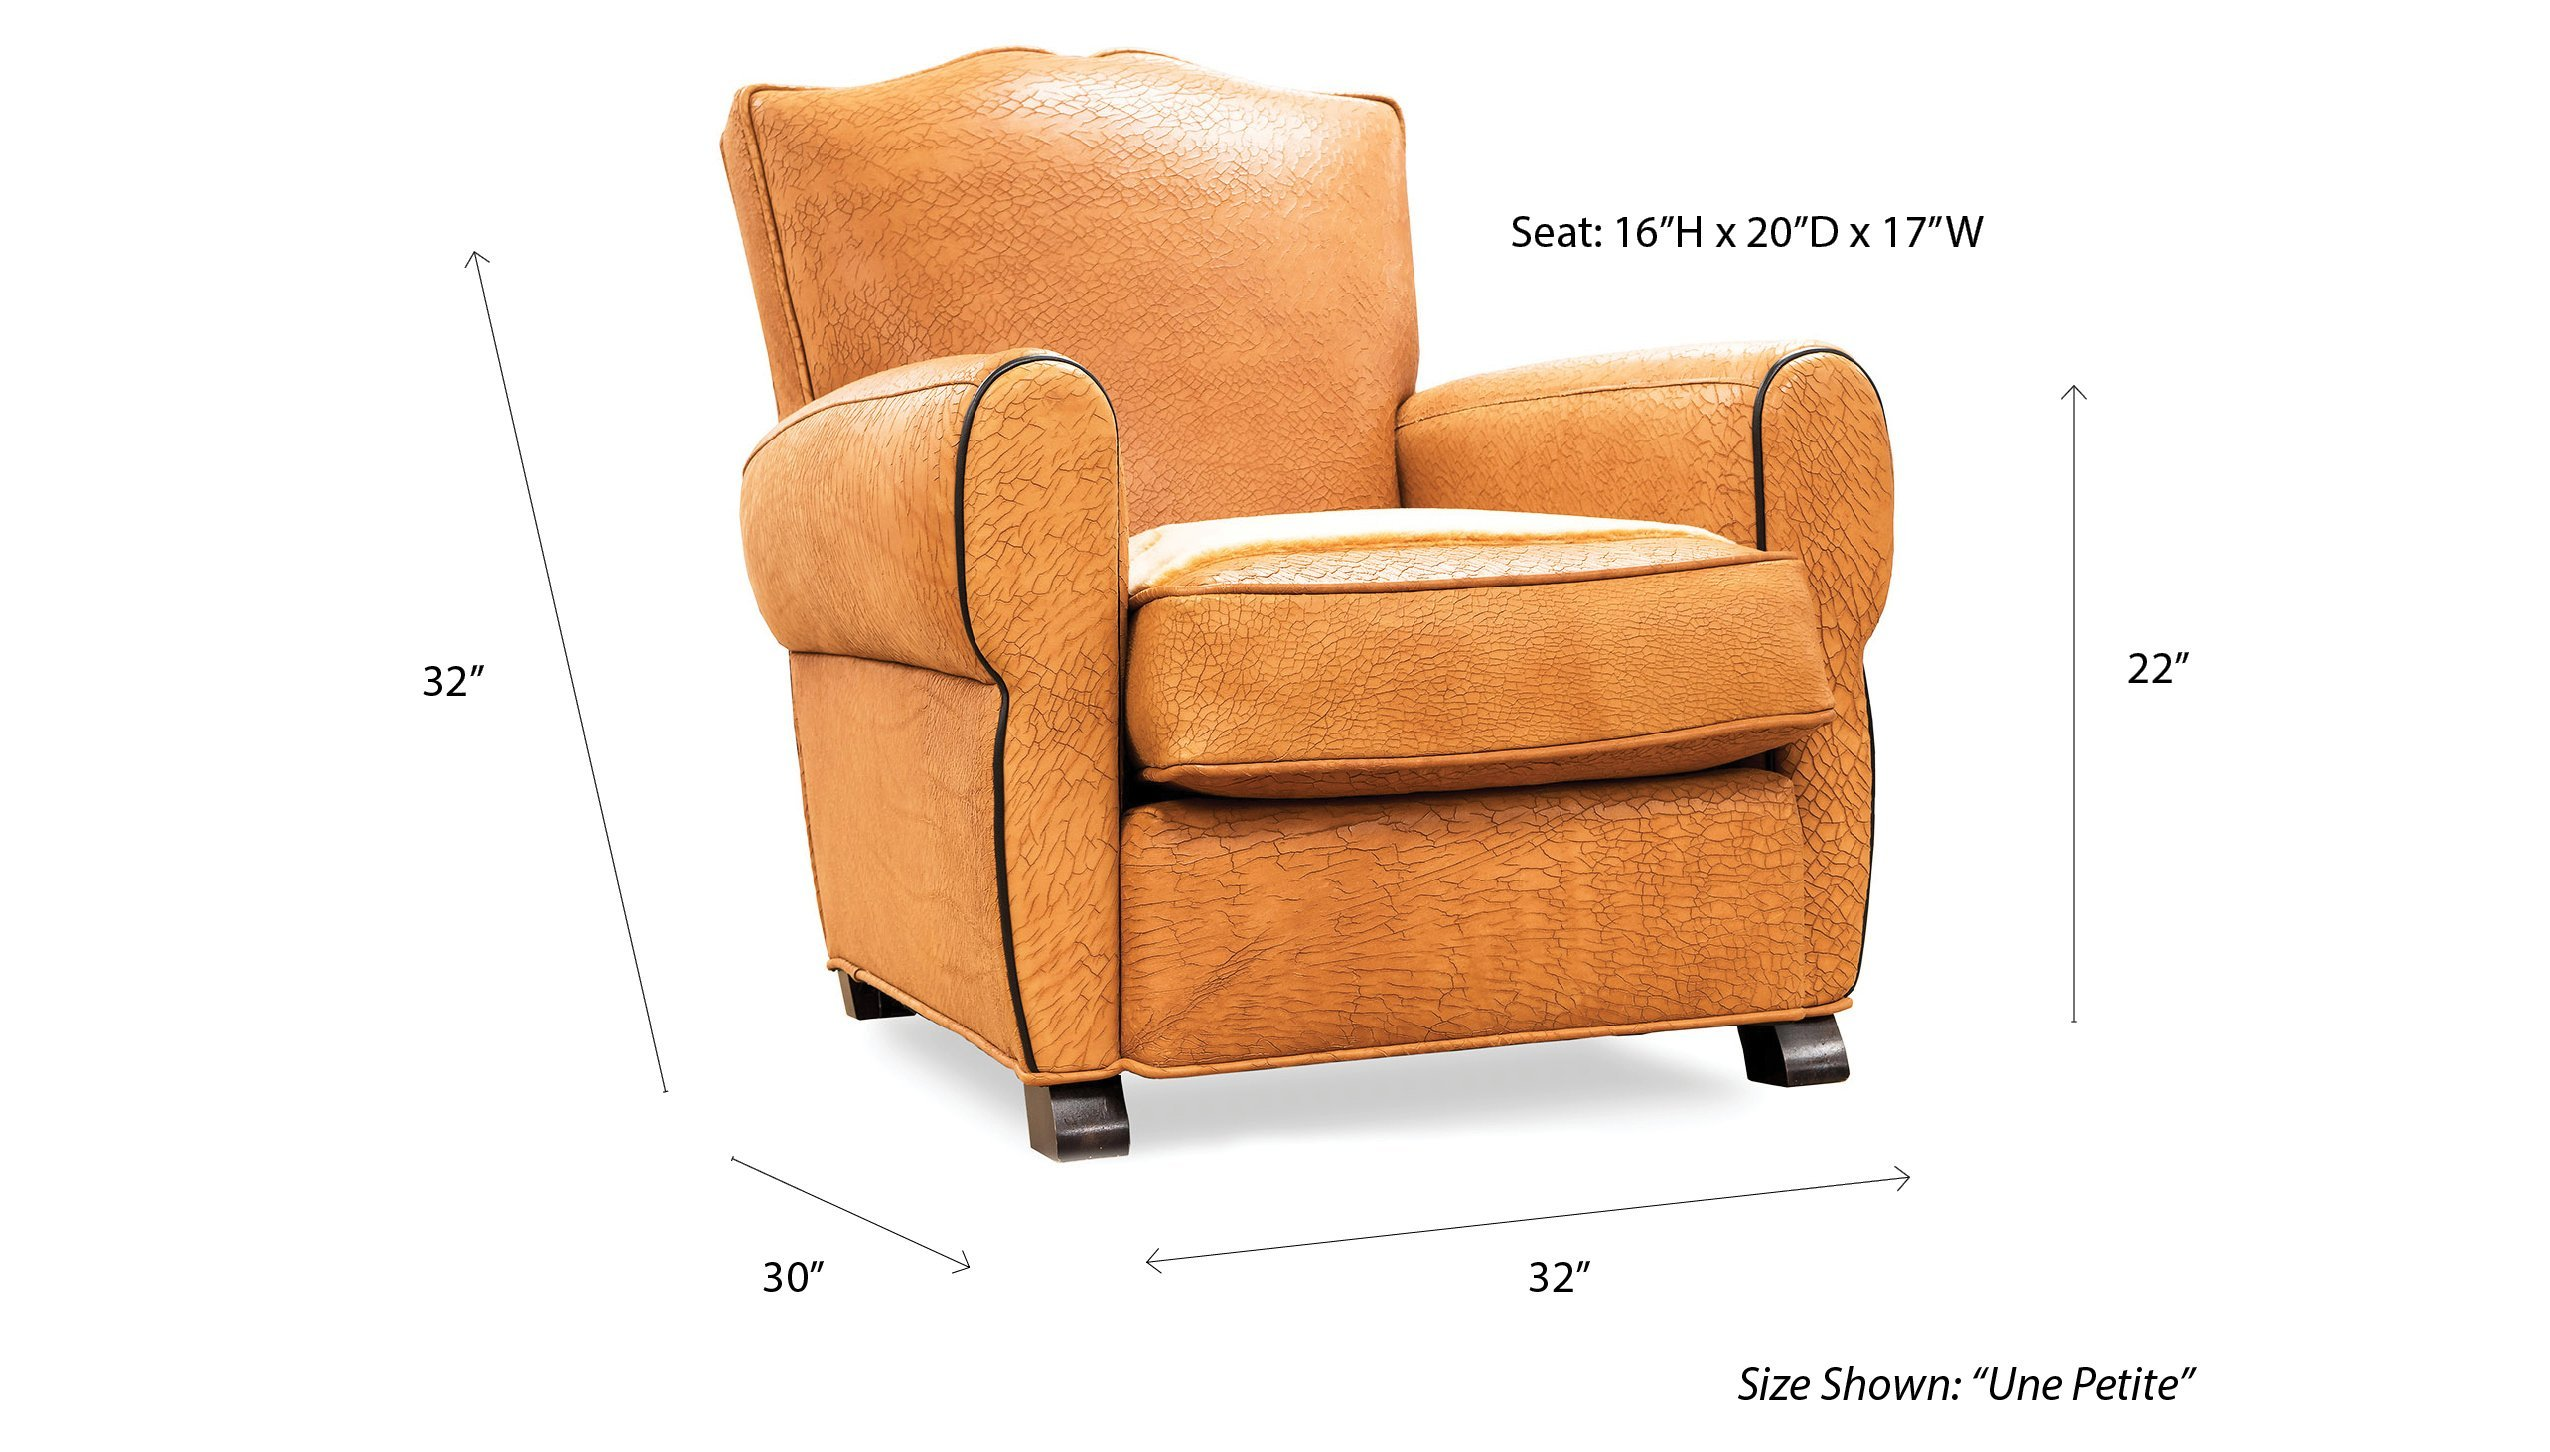 classic paris club chair measurements